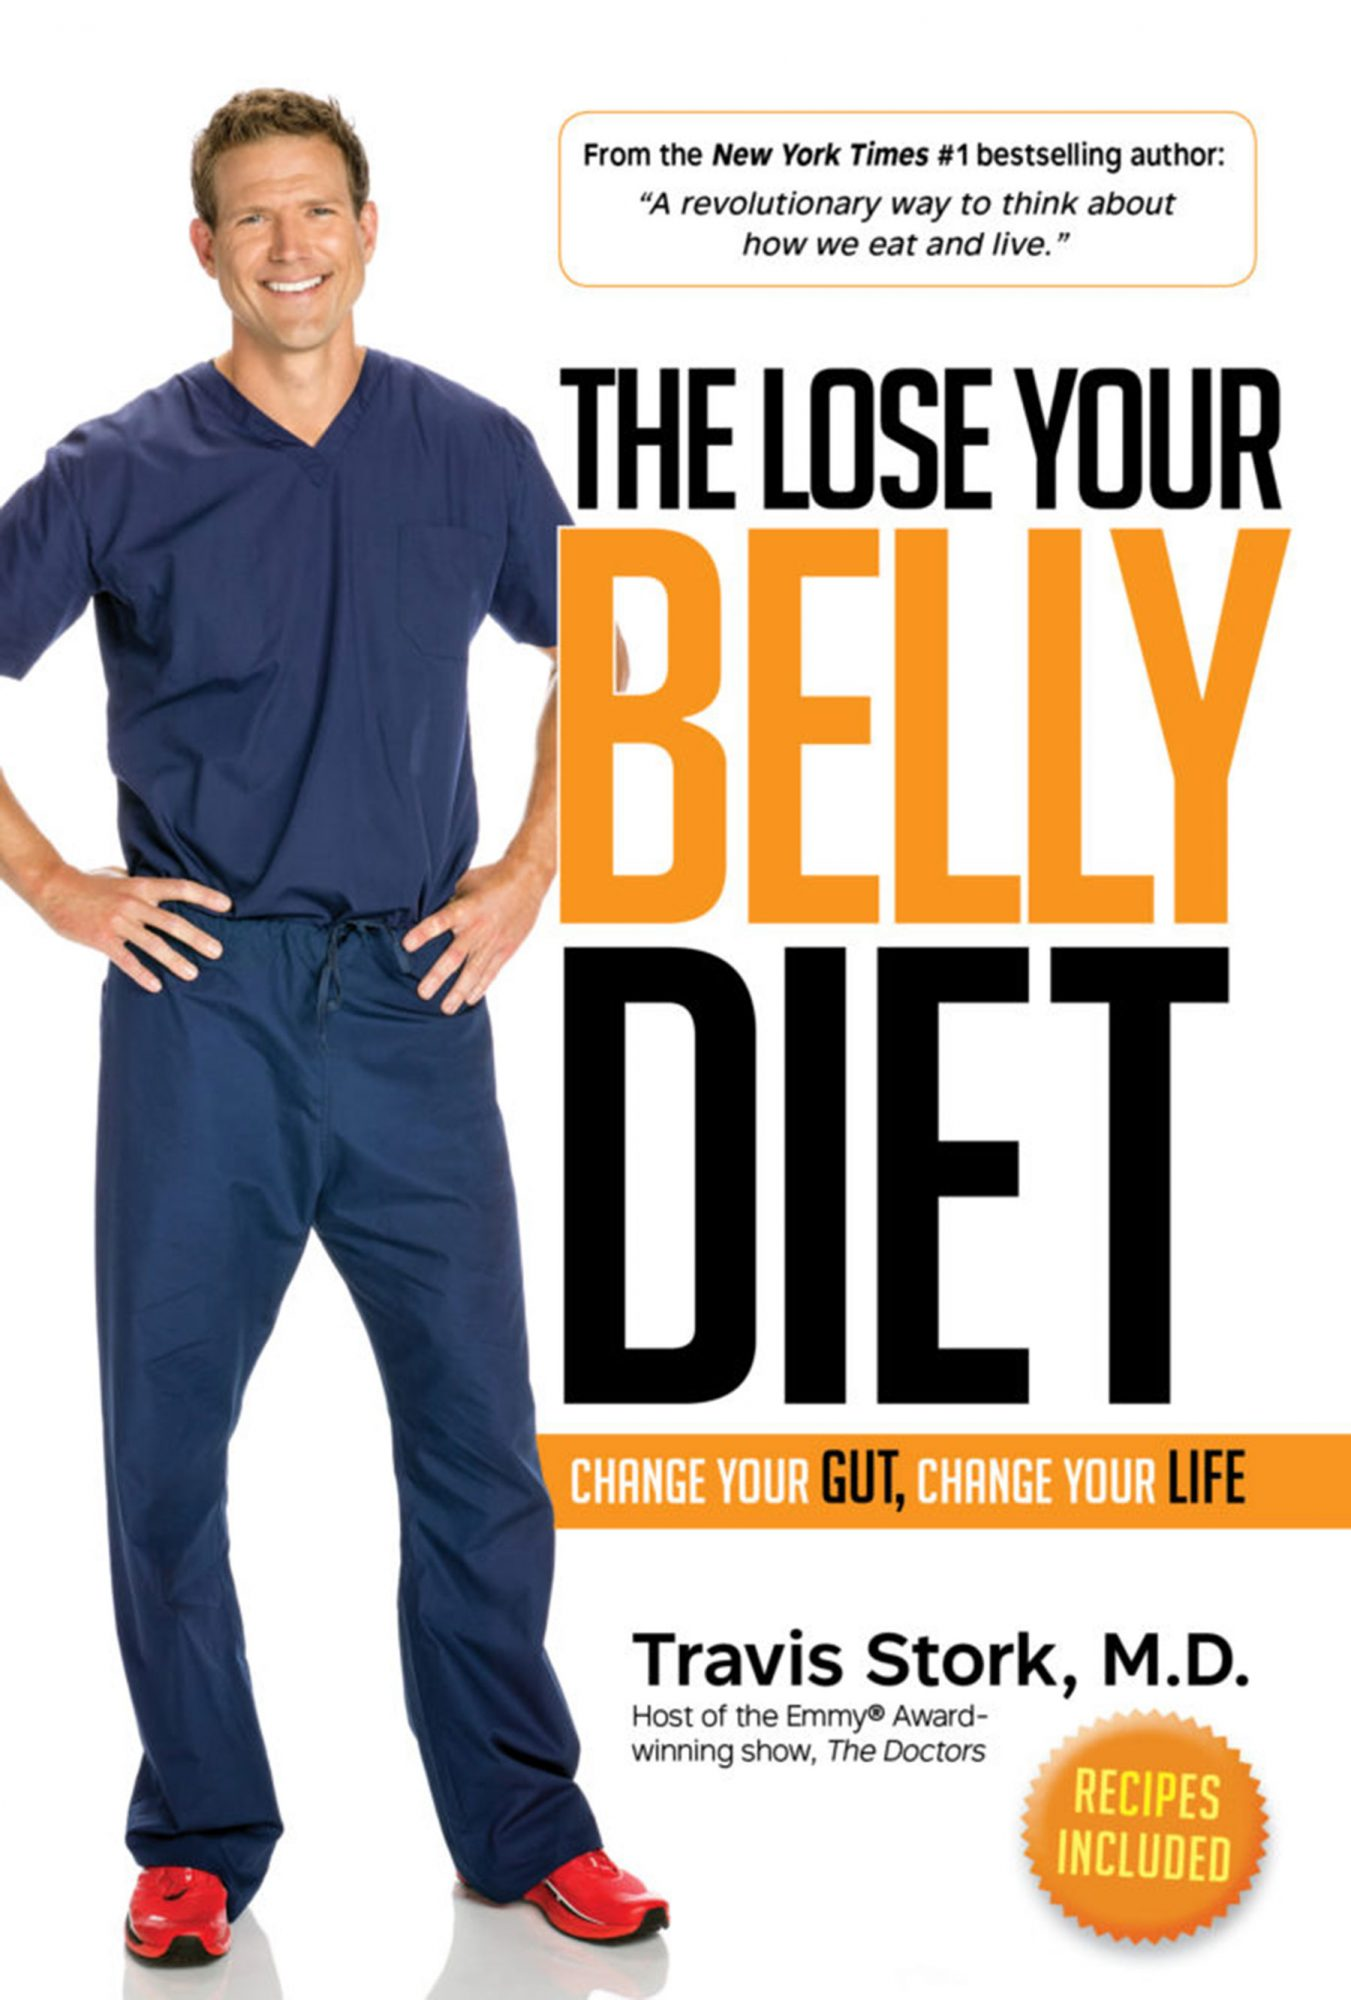 The Lose Your Belly Diet by Travis Stork M.D.